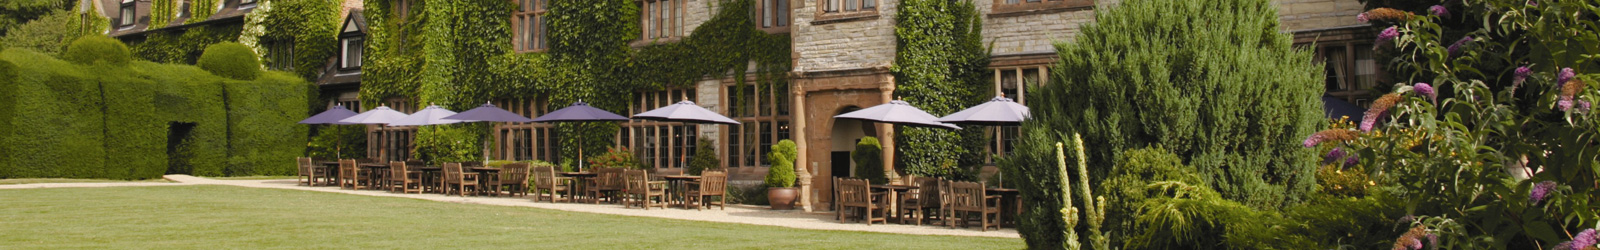 Contact English Country Hotels for our selection of contemporary country hotels & venues